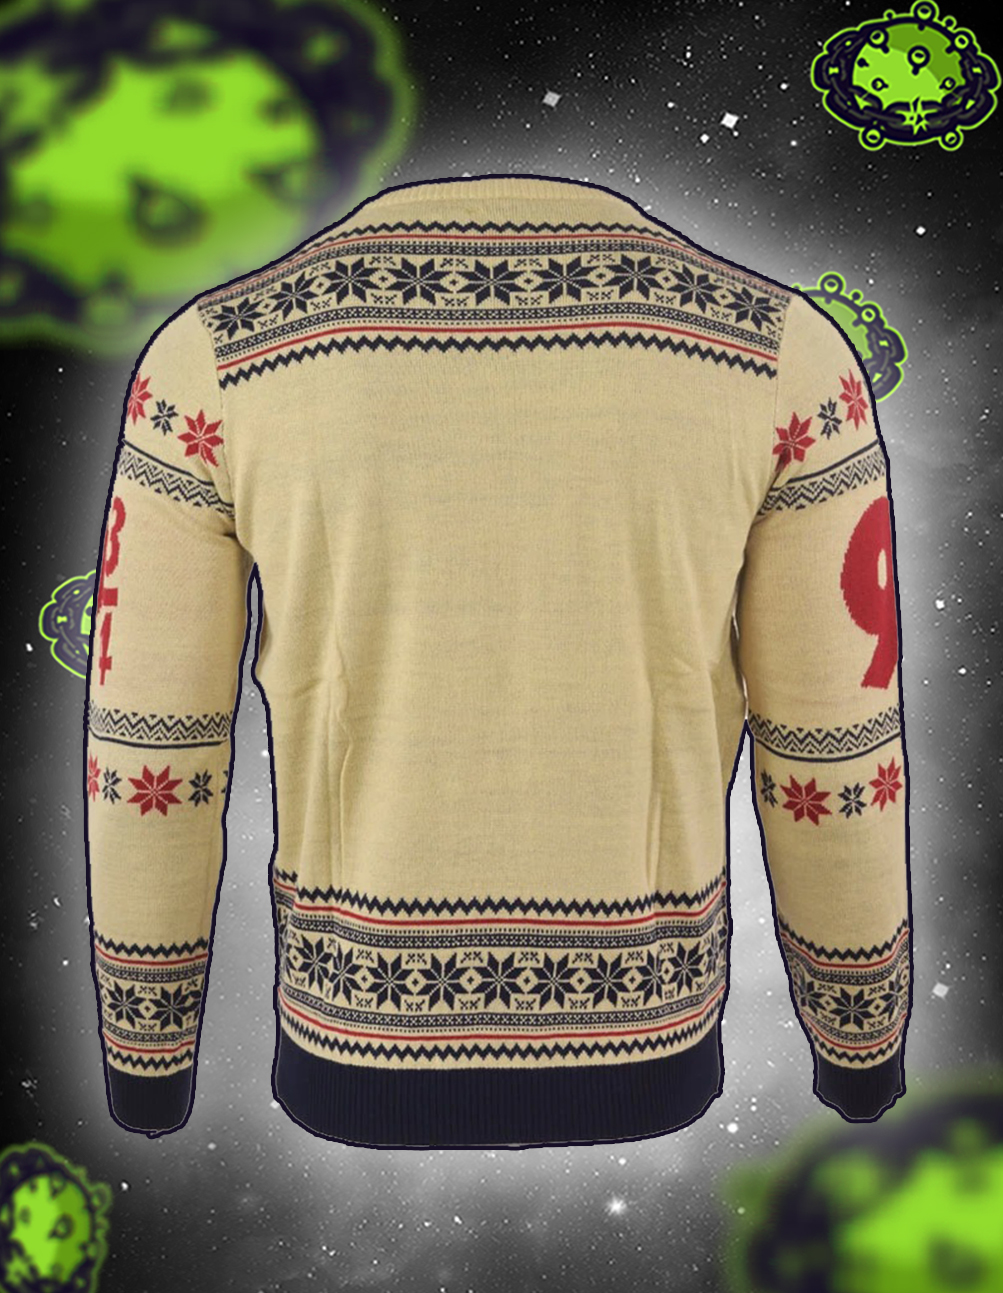 Harry potter hogwarts express christmas jumper and ugly sweater back